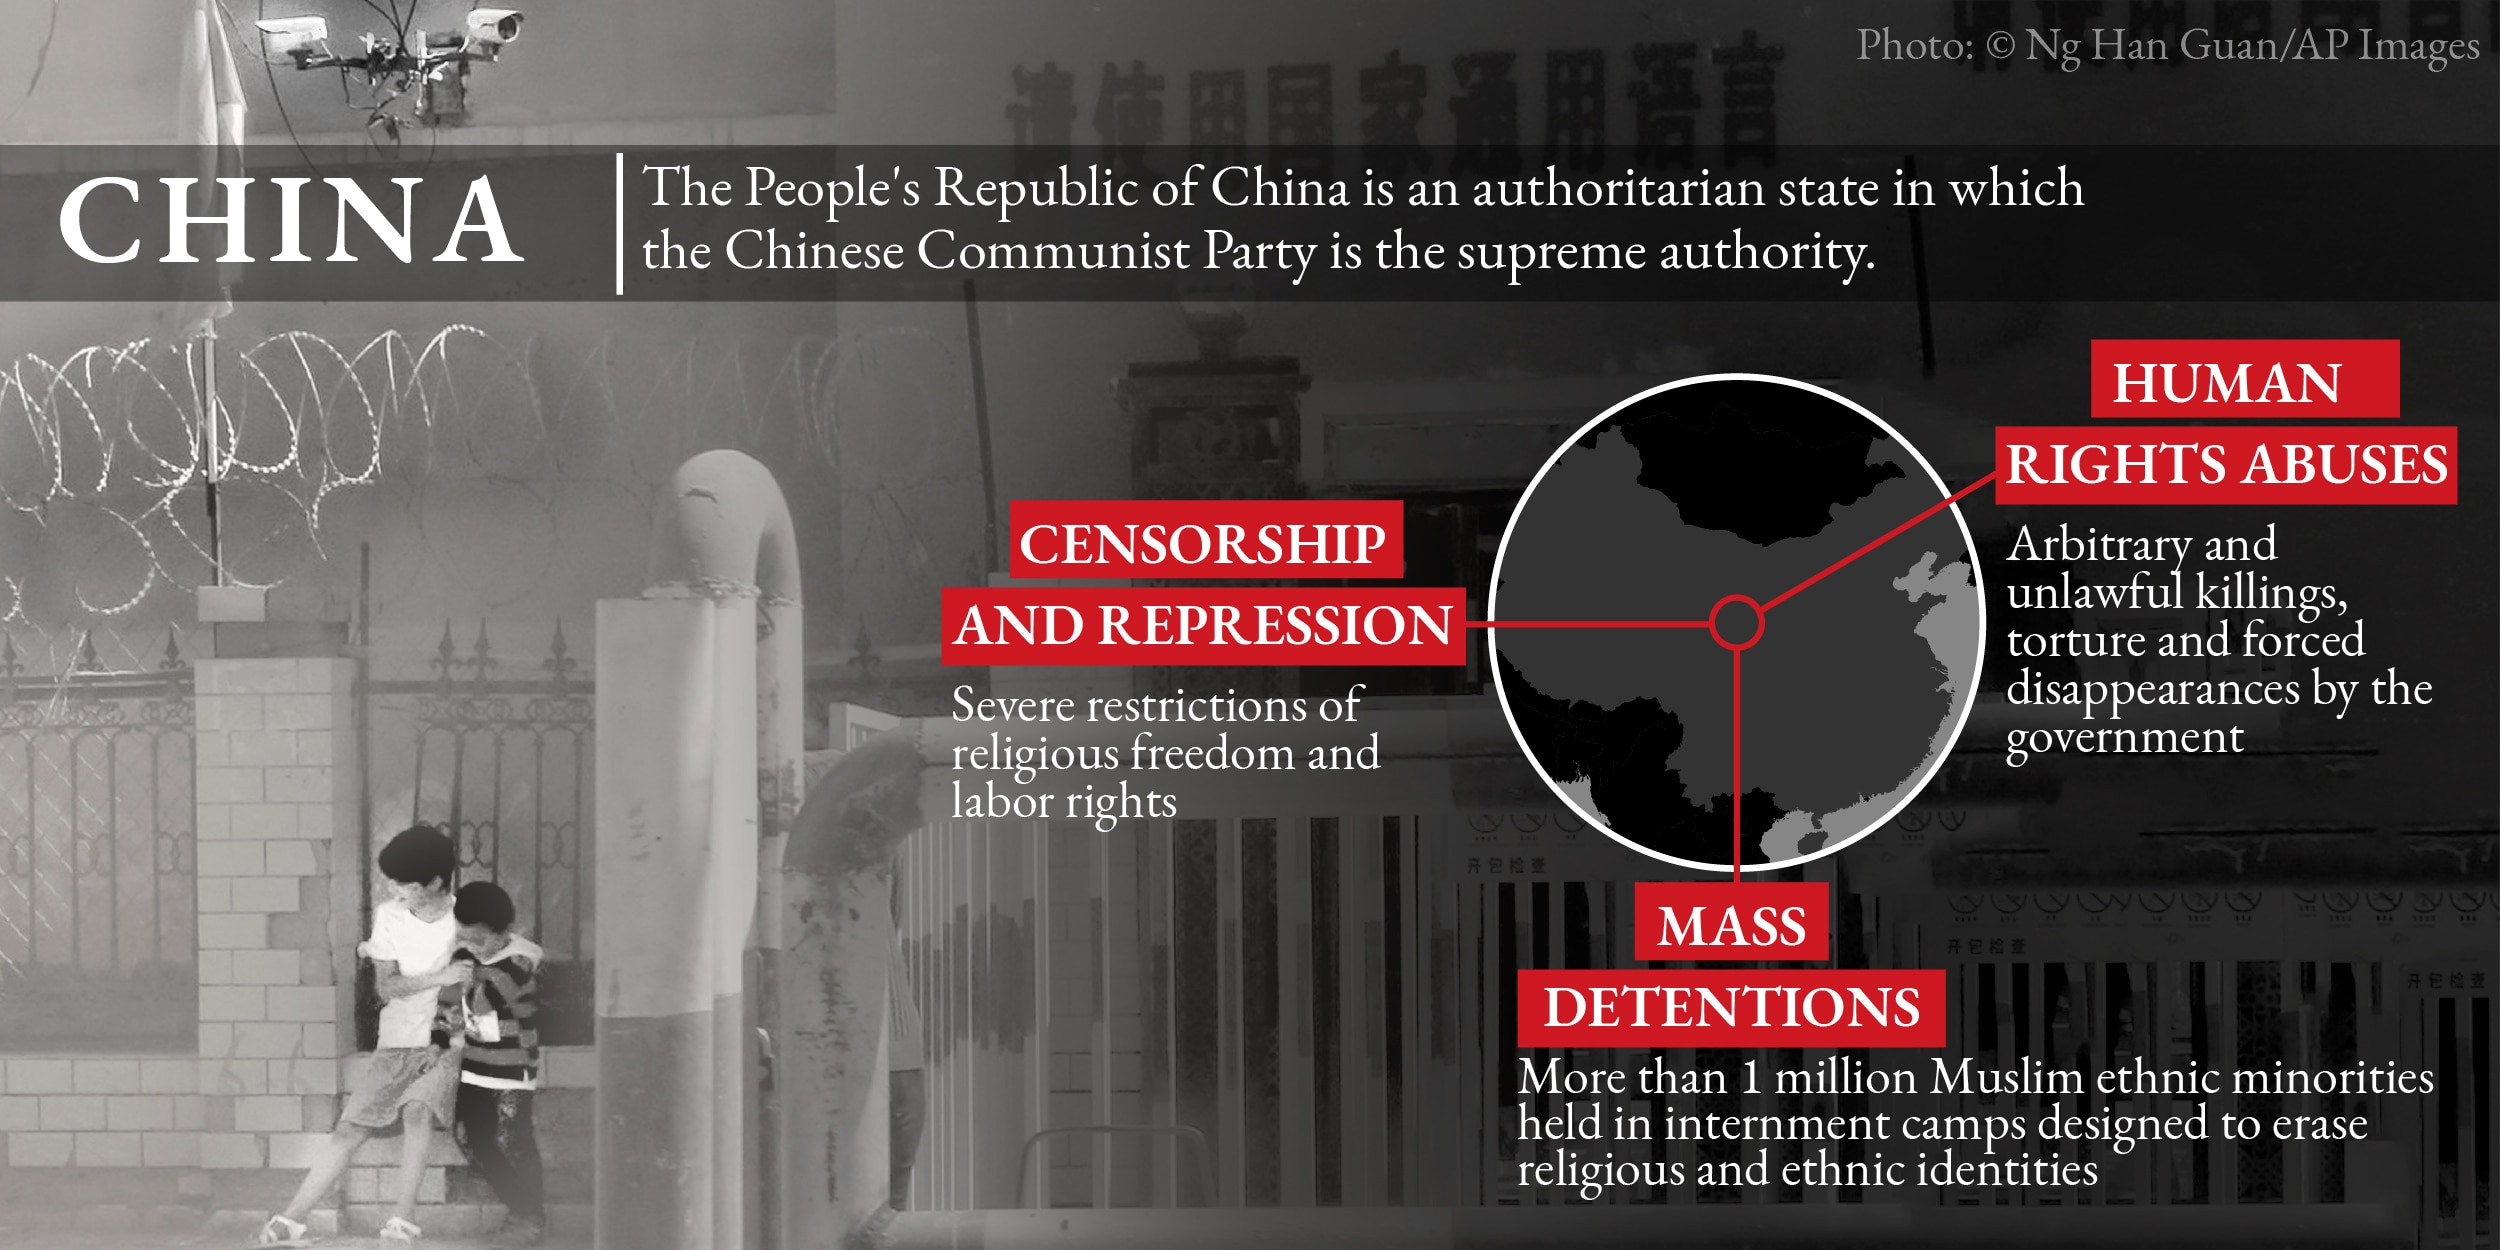 Infographic on China's human rights practices, with photo © Ng Han Guan/AP Images (State Dept.)